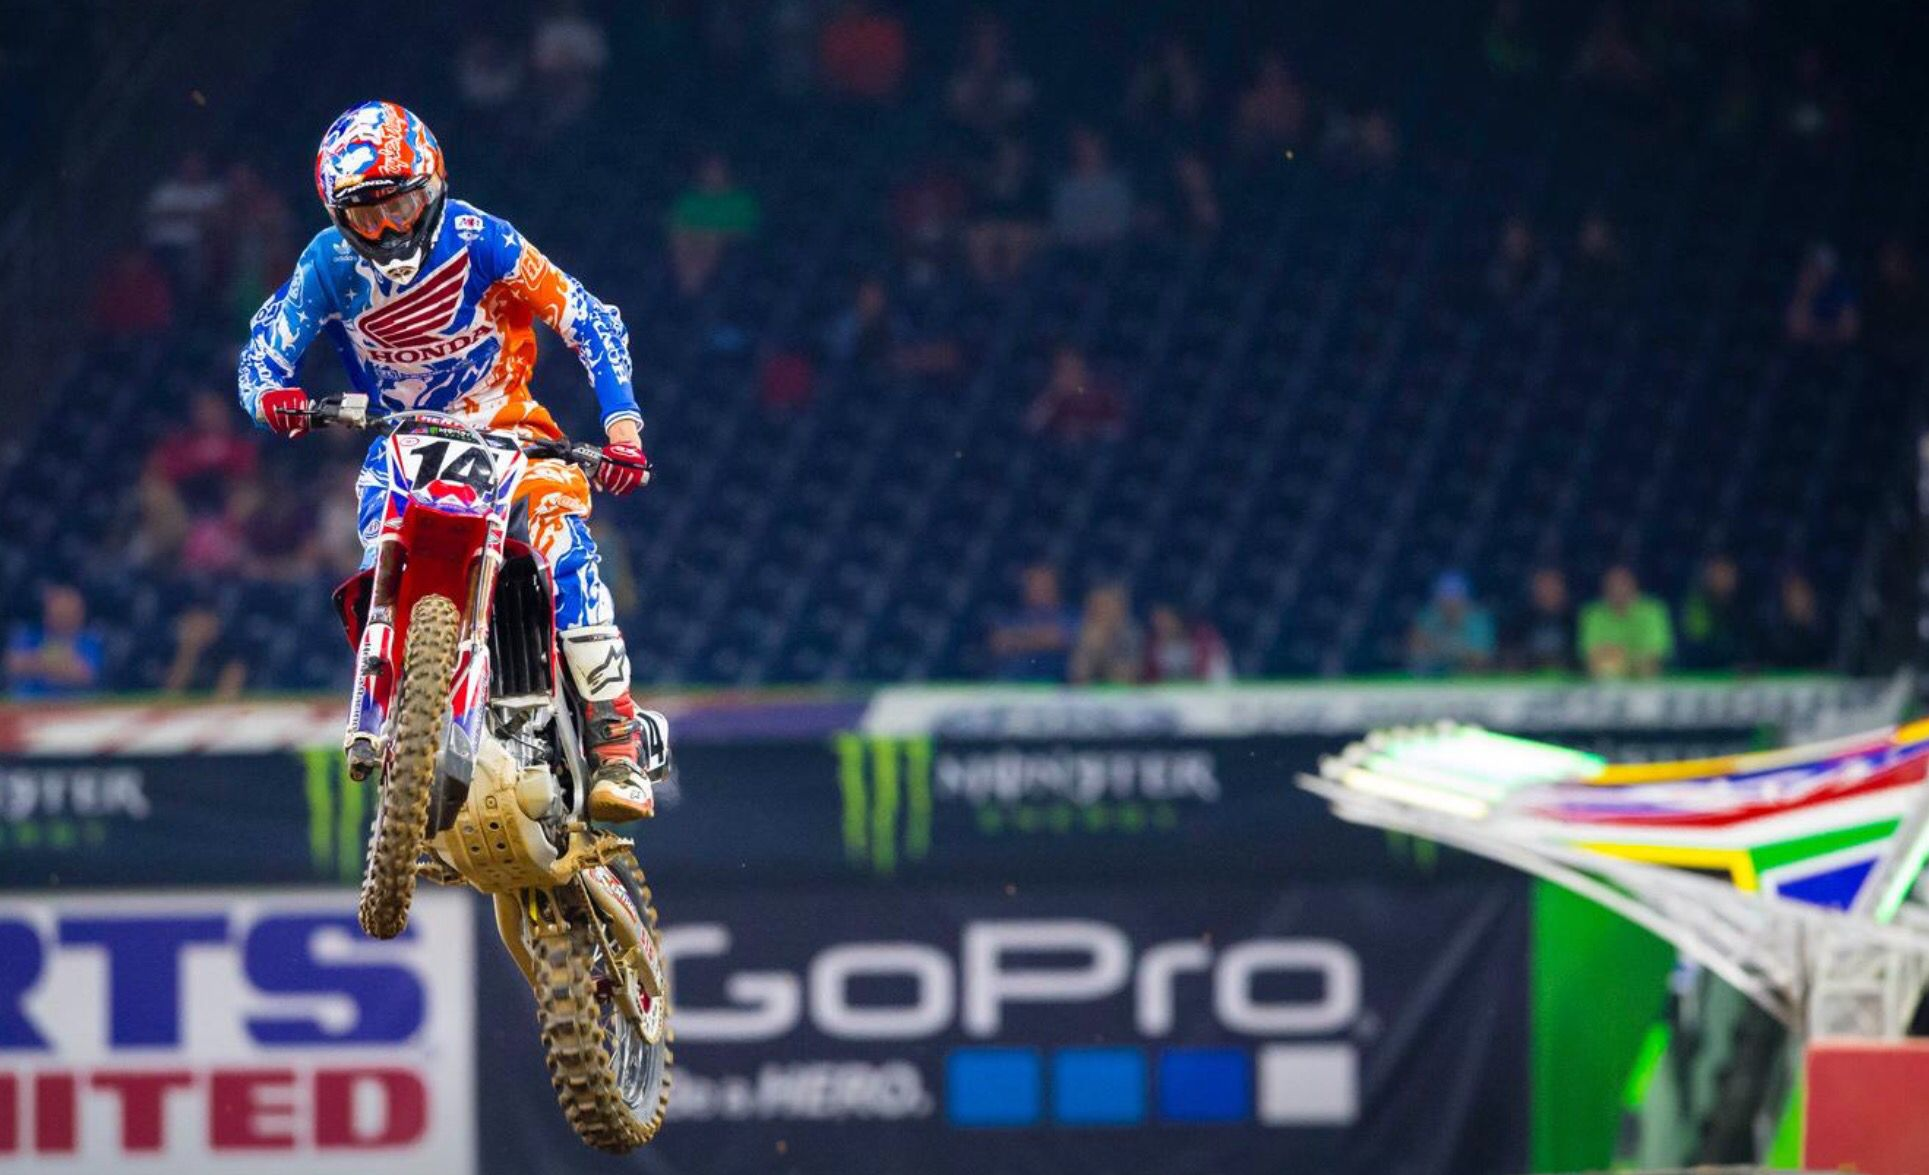 Cole Seely - 2015